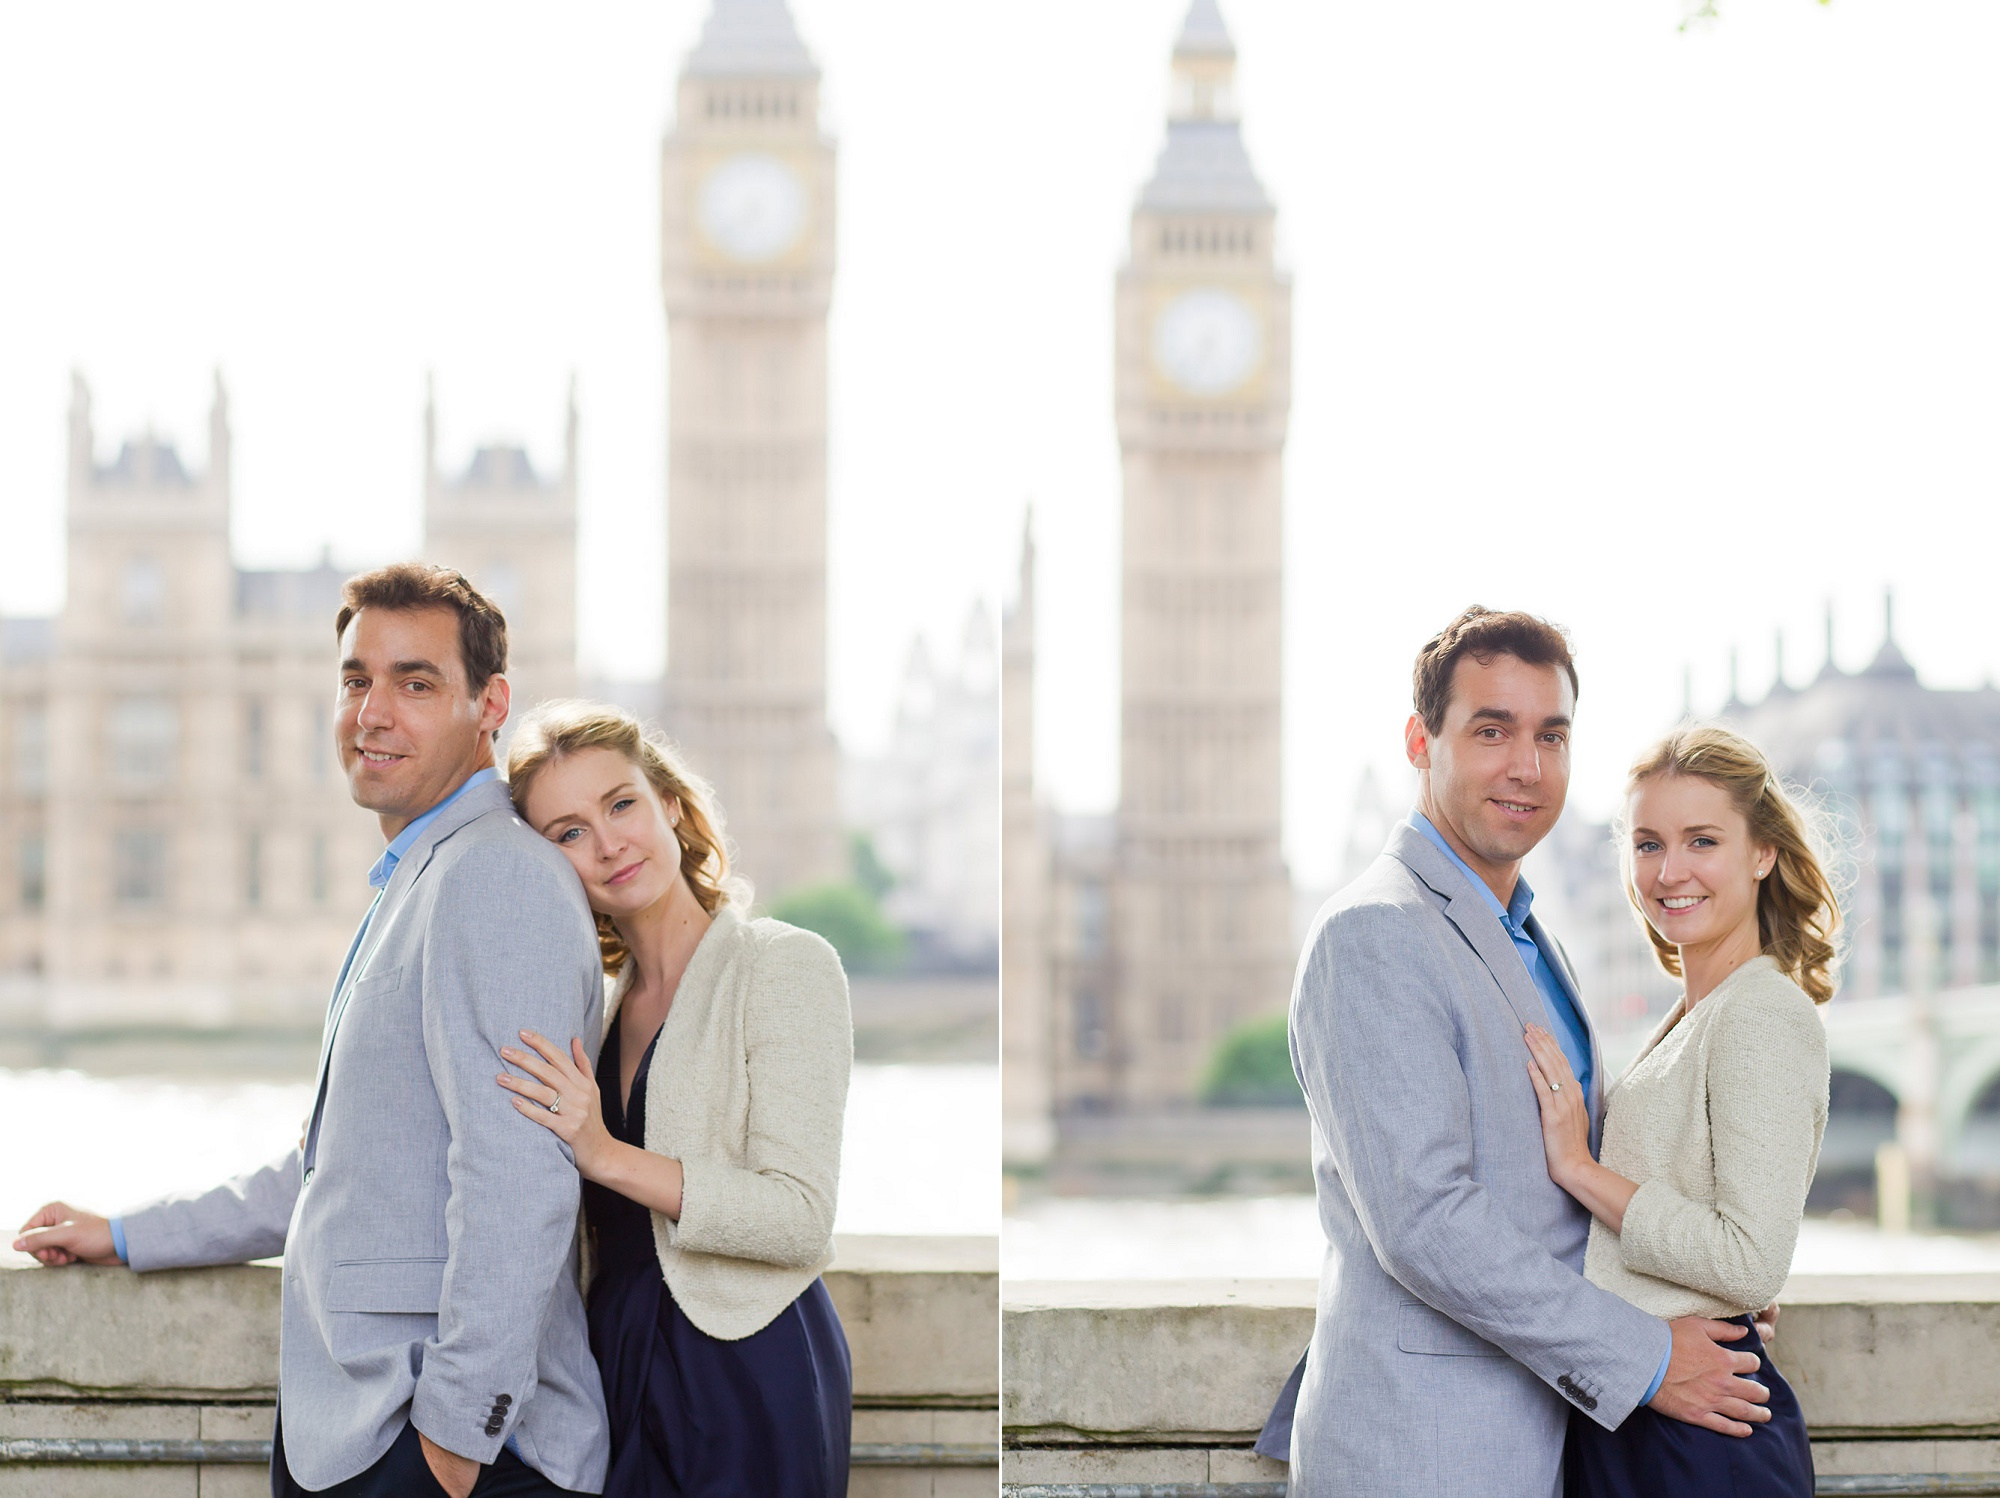 engagement photos across from big ben london